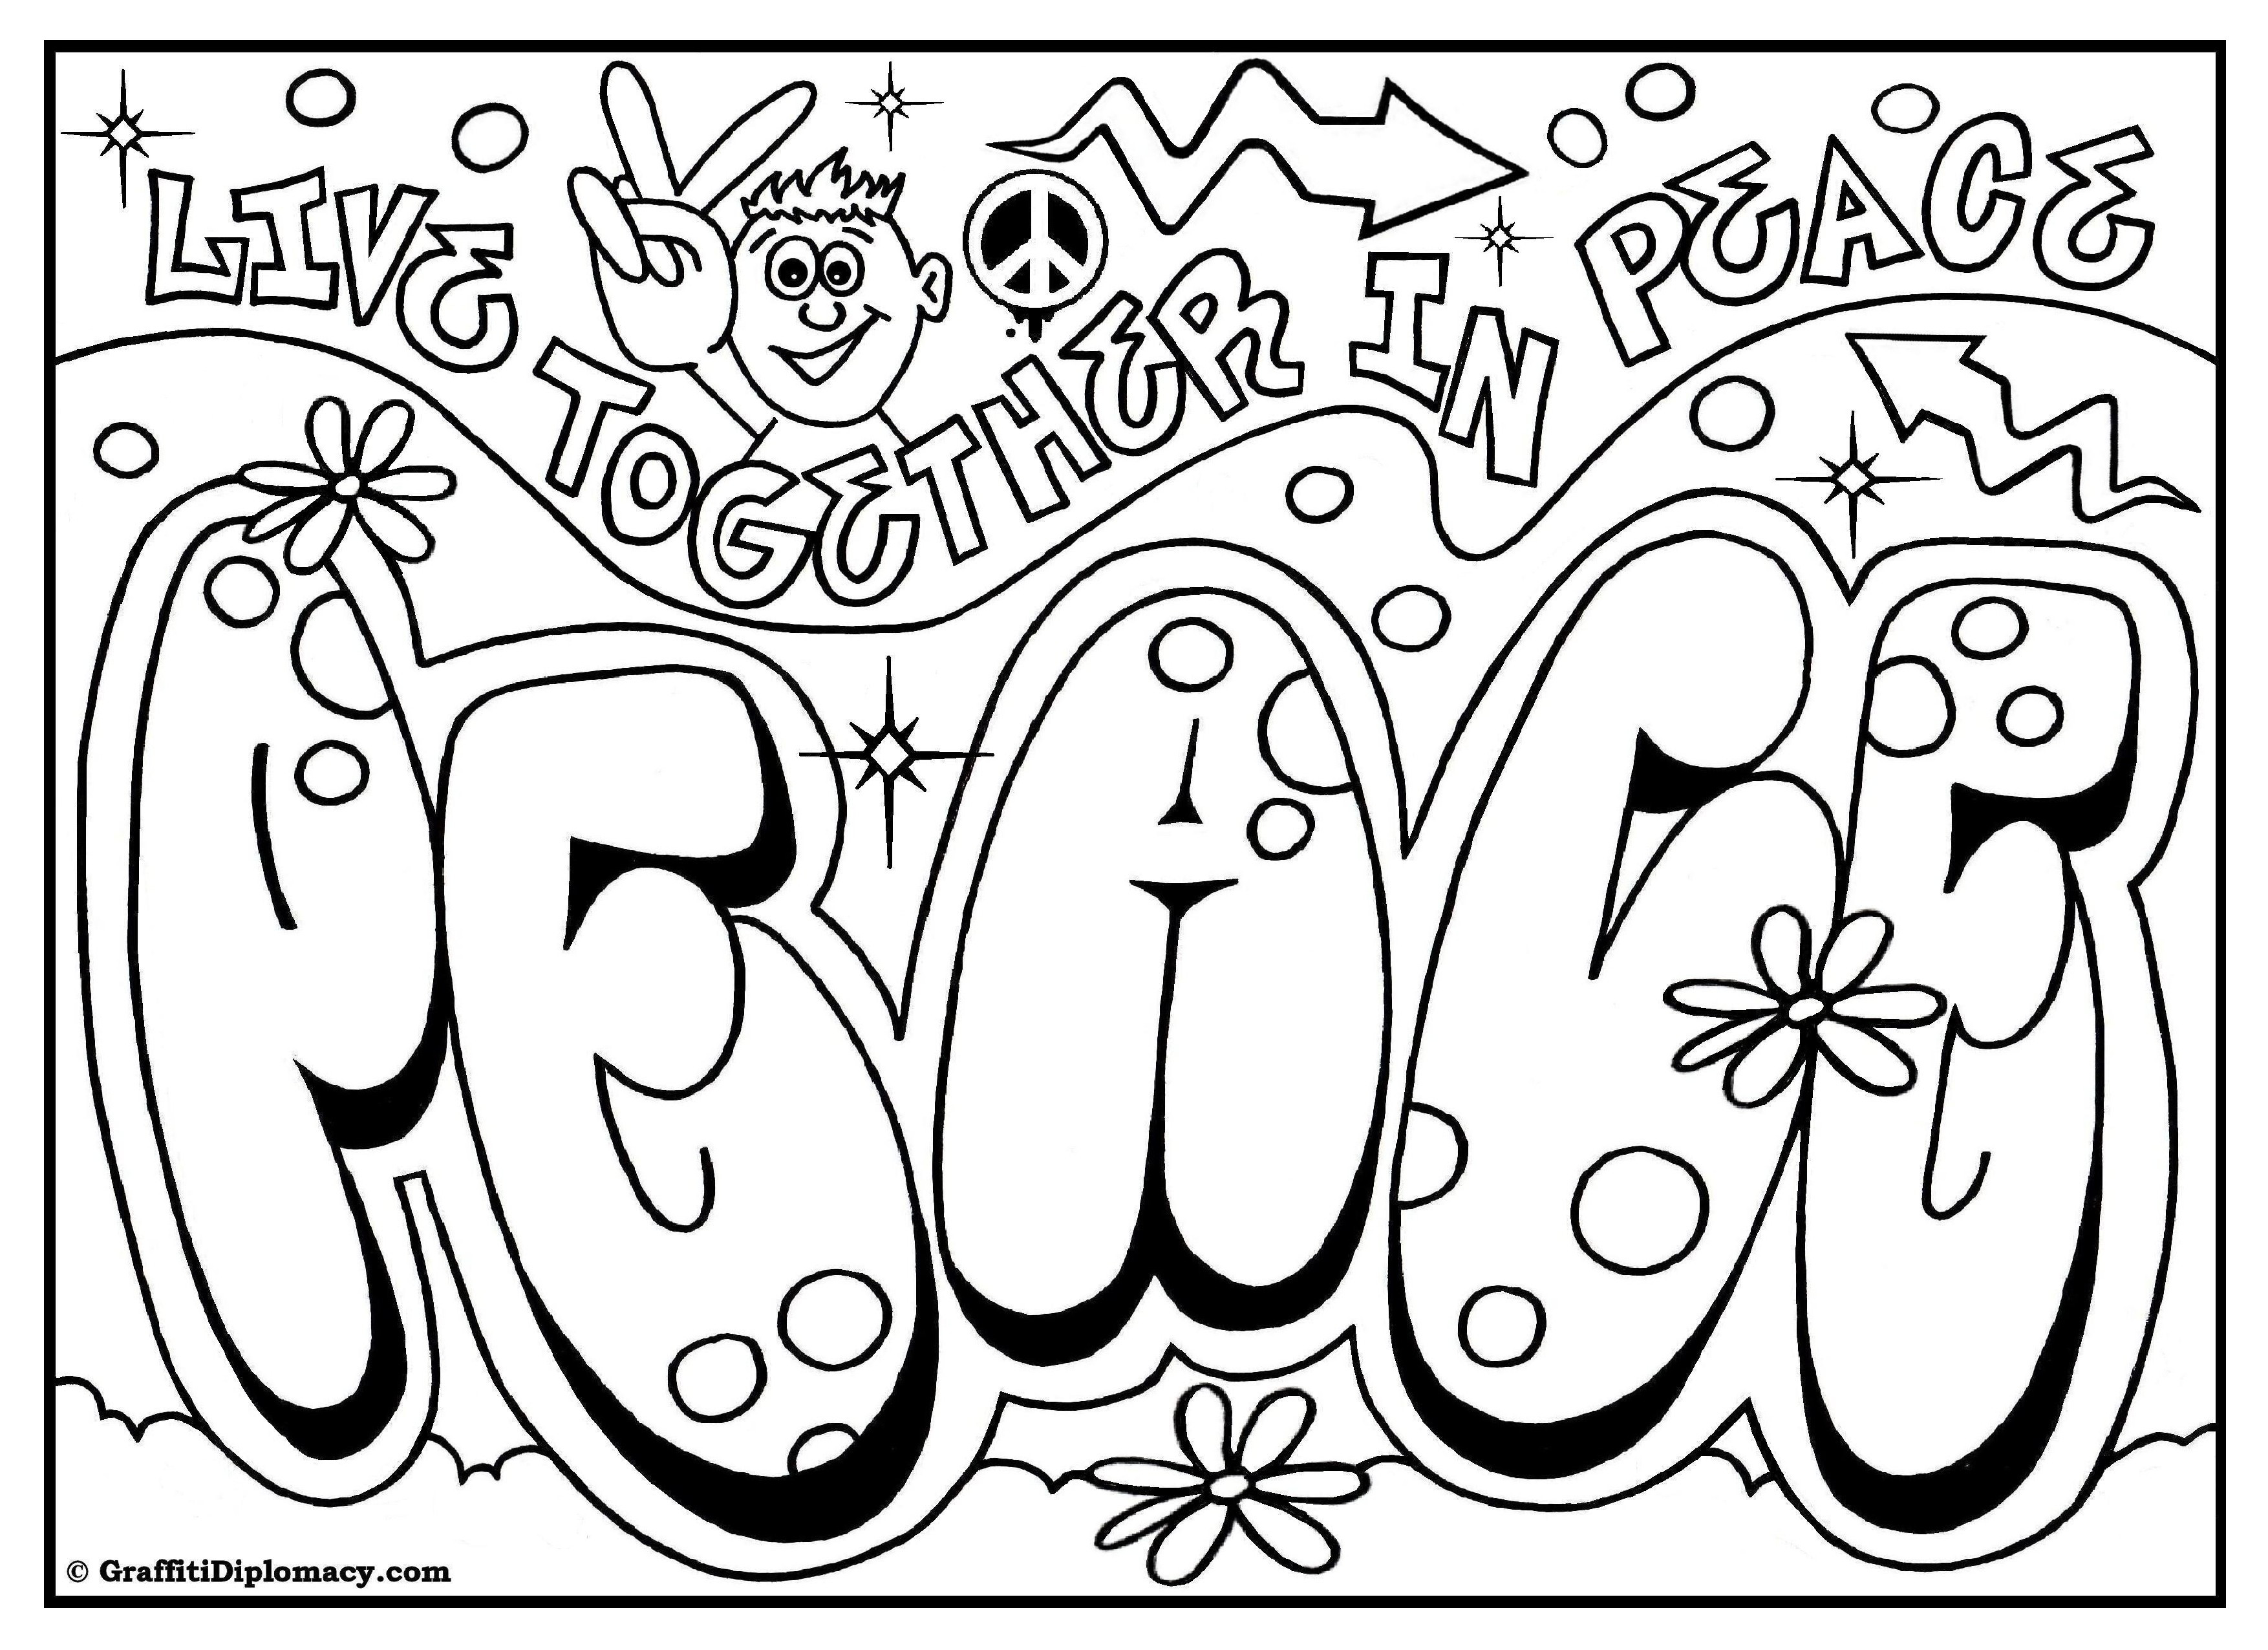 Peace Coloring Pages For Kids  OMG Another Graffiti Coloring Book of Room Signs Learn